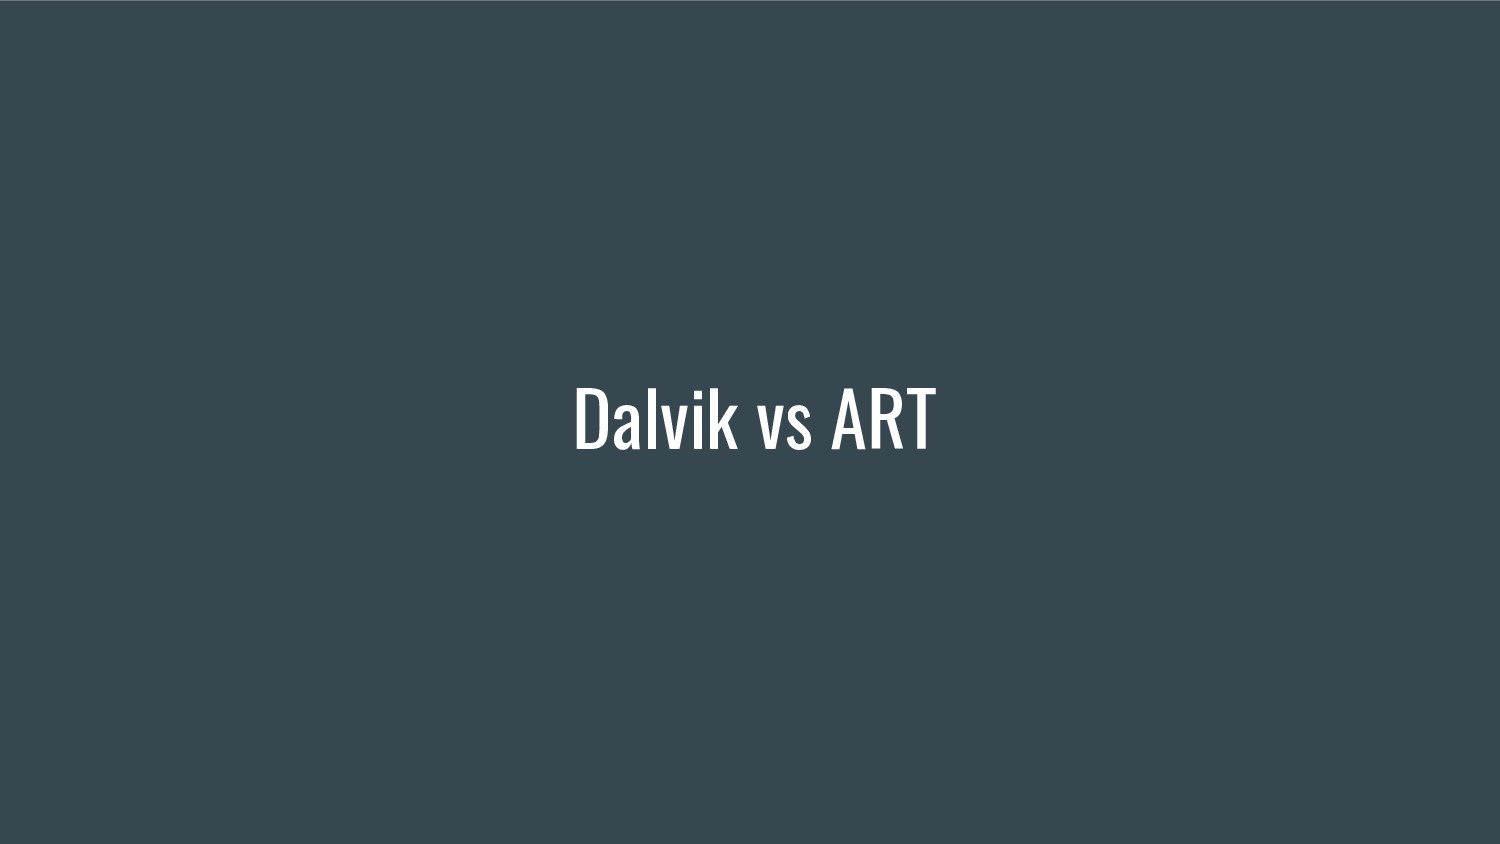 Dalvik vs ART